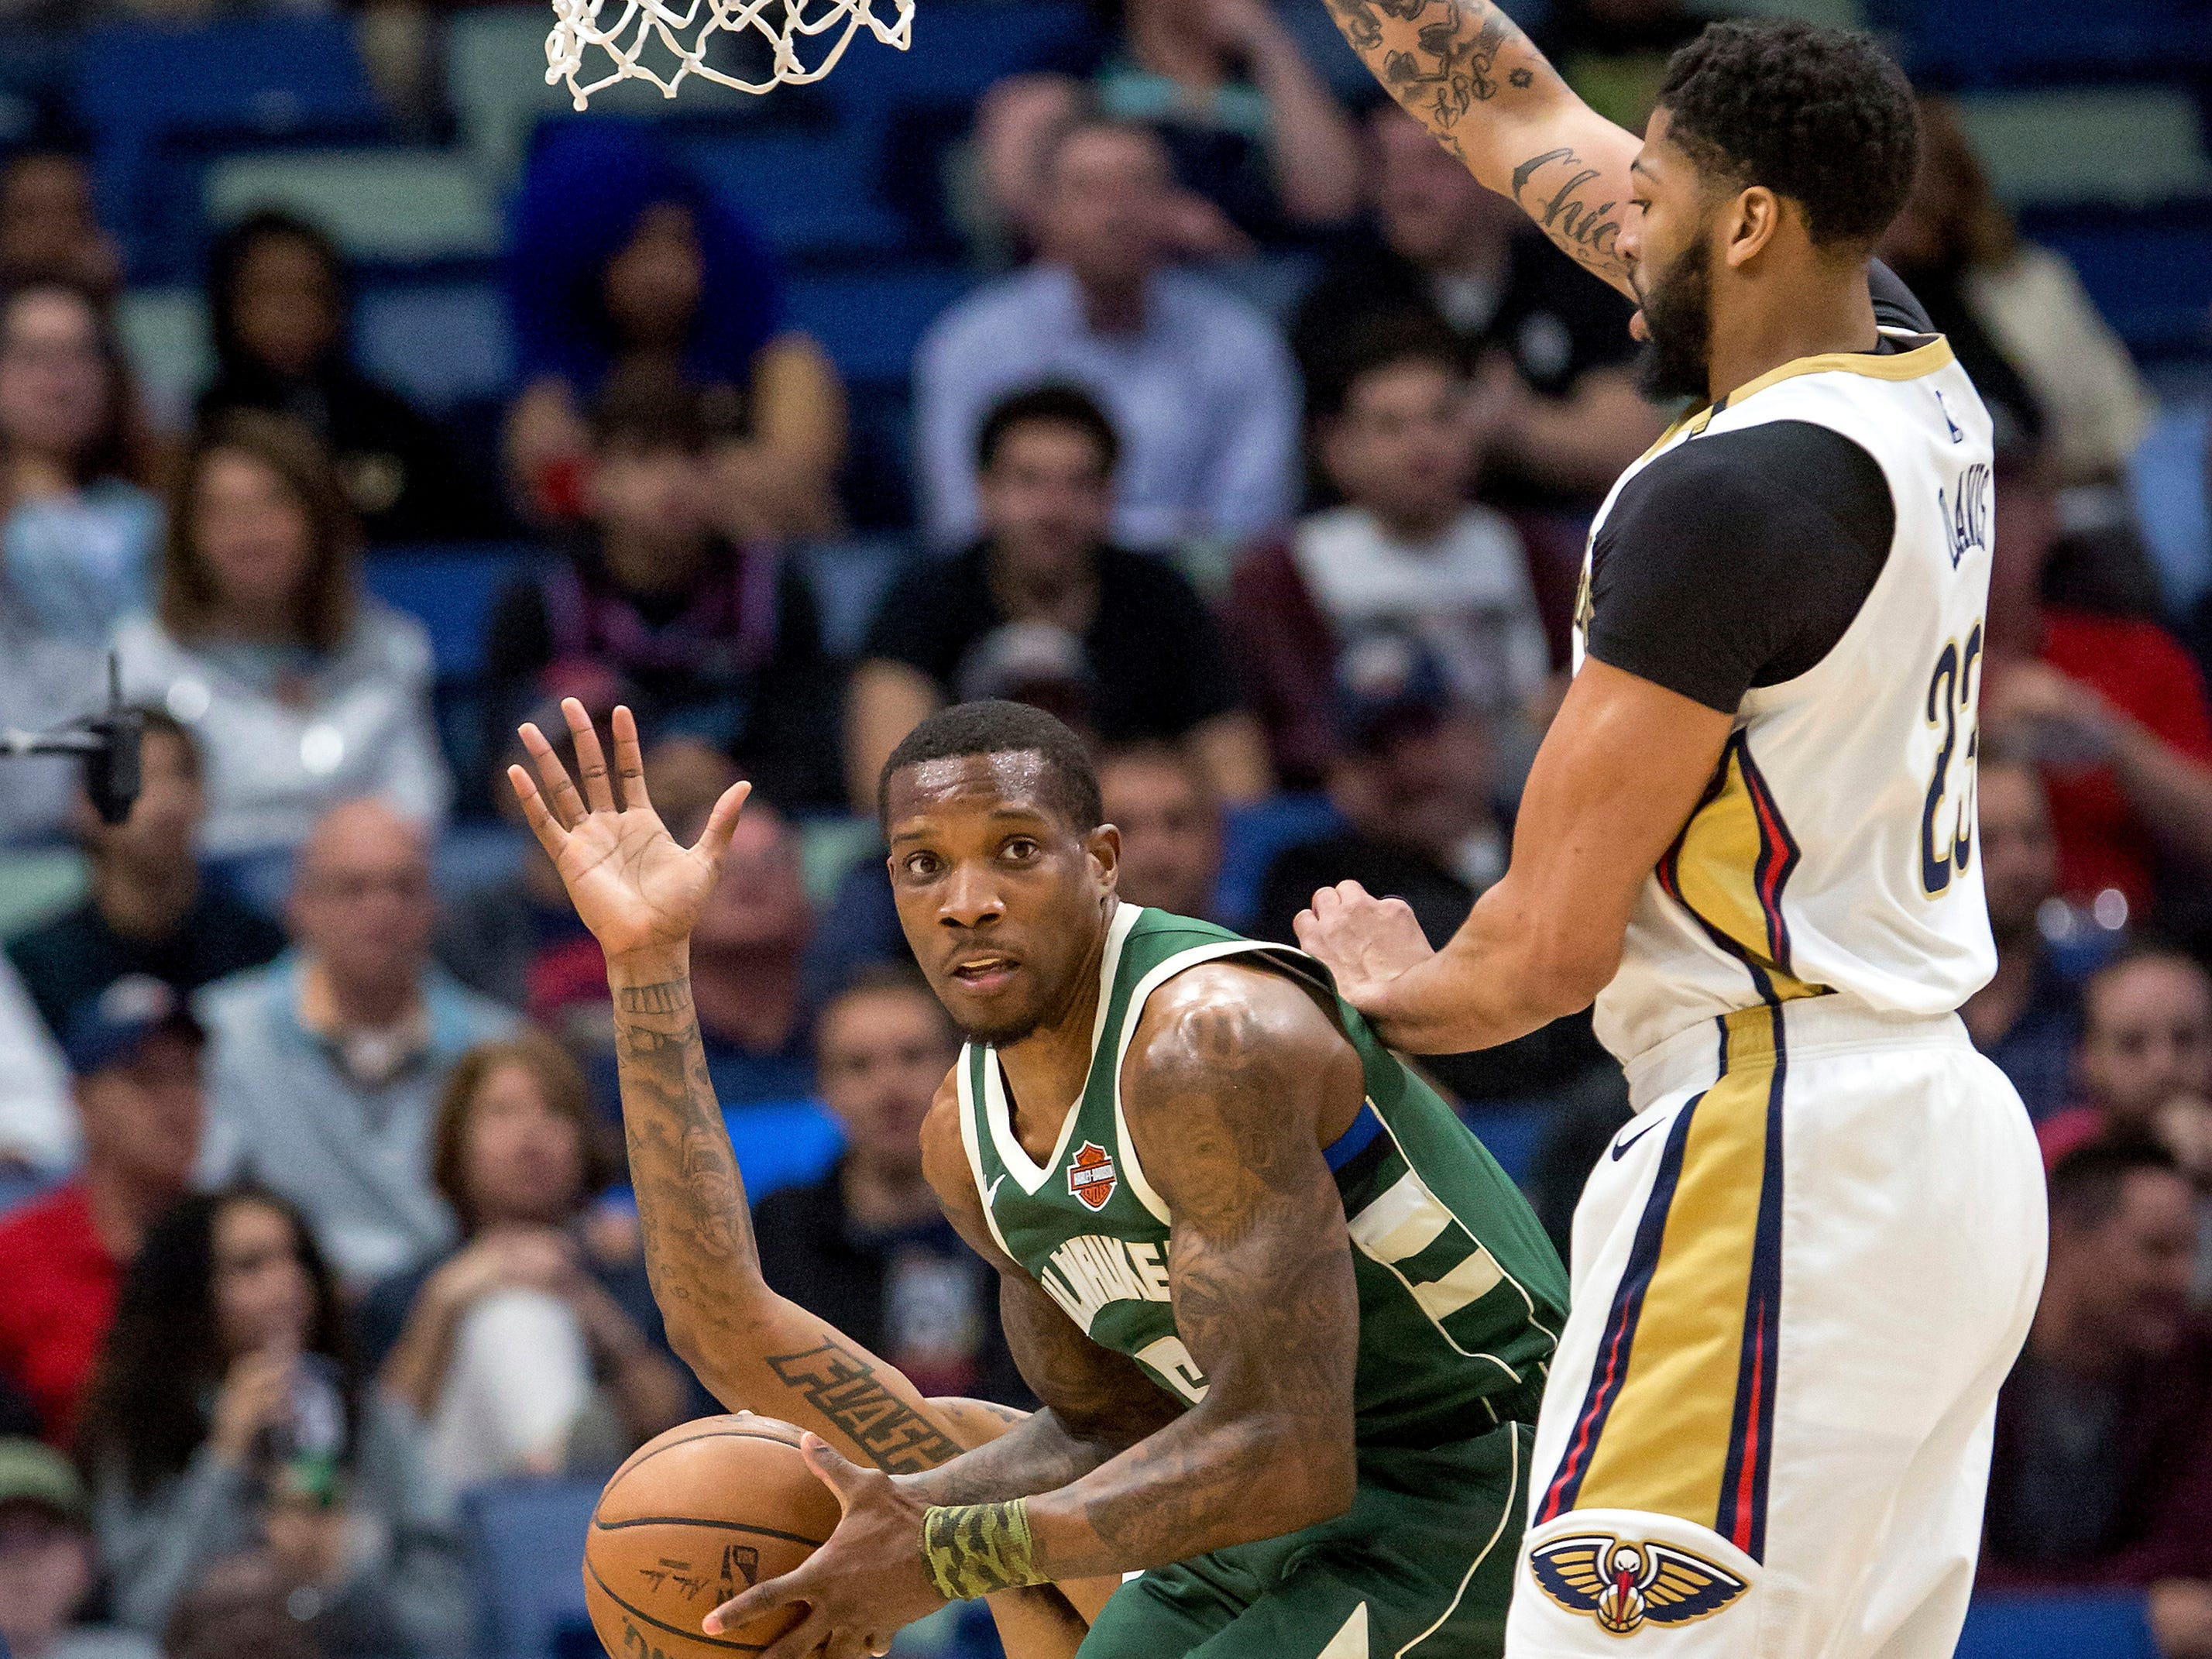 Bucks guard Eric Bledsoe is forced to kick a pass out to a team after being met by Pelicans forward Anthony Davis on a drive to the basket during the first half.